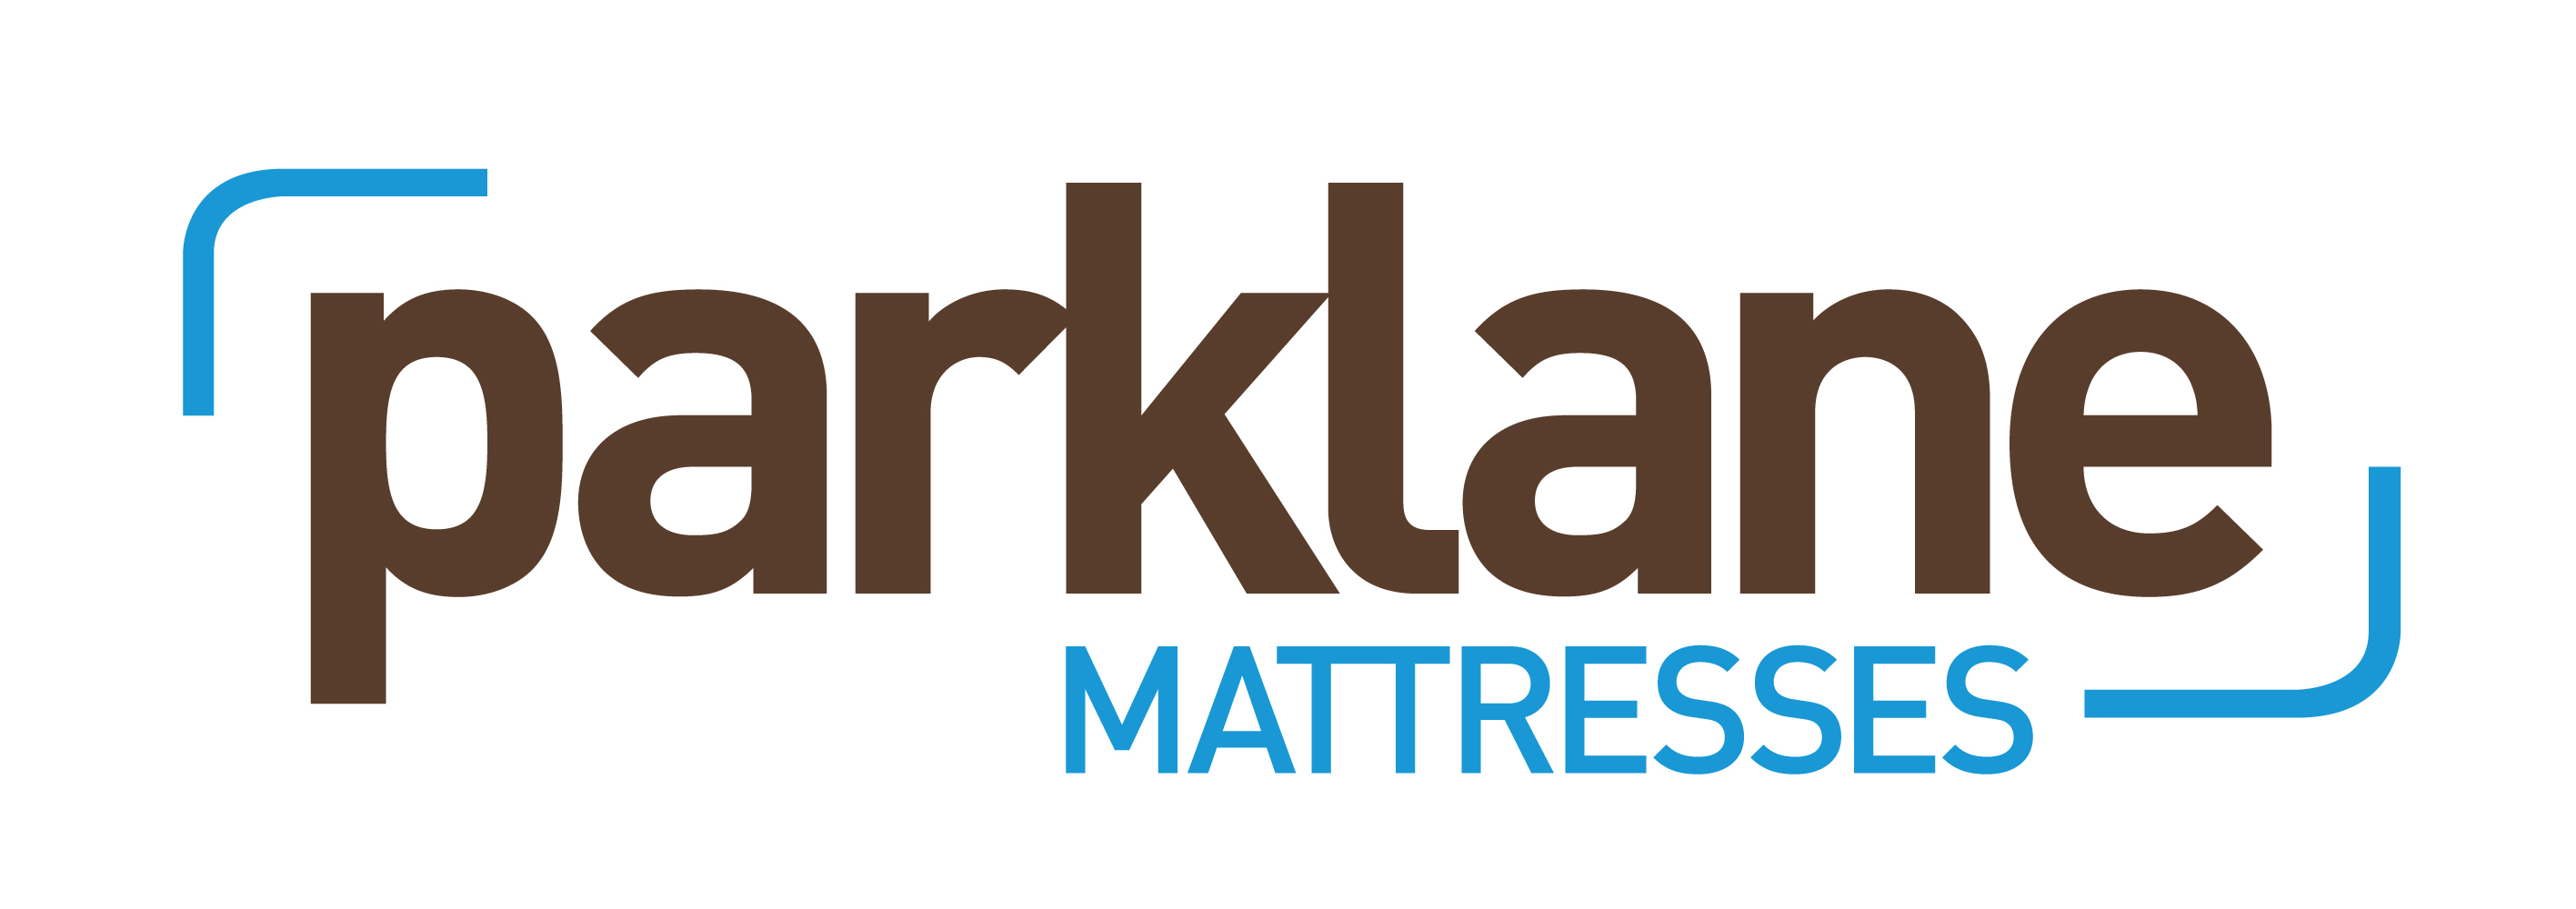 Mattresses Mattress Warehouse Clearance Outlet Mattresses About Mattress Warehouse Pricing Contact Us ...